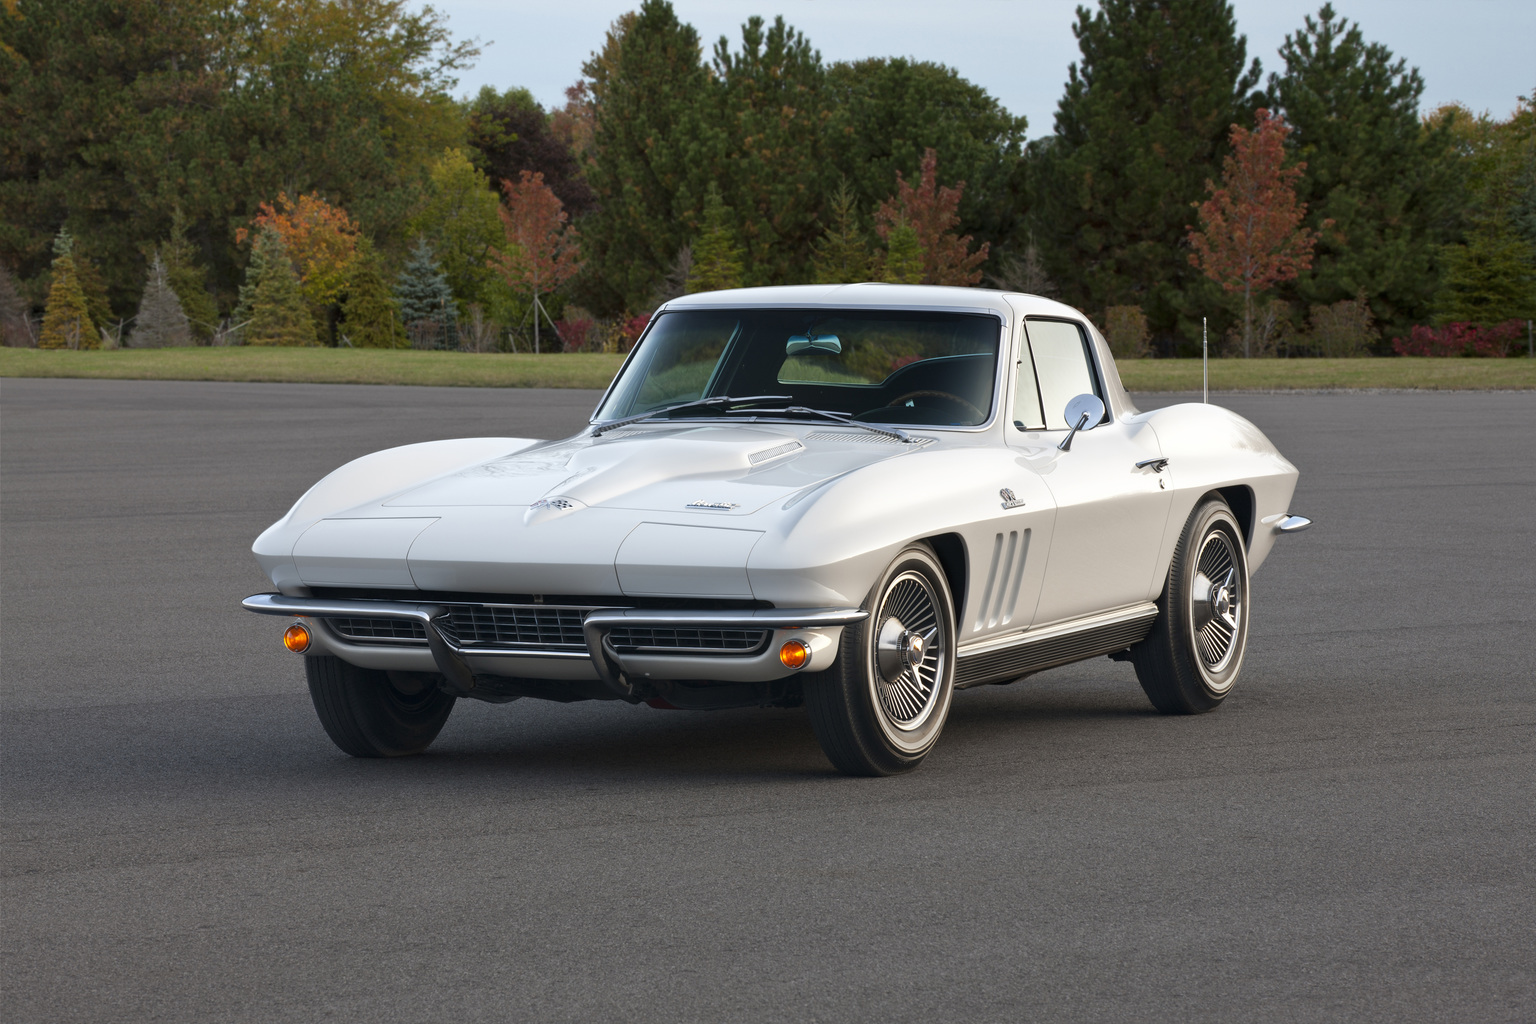 1966 Chevrolet Corvette Sting Ray L36 427 390 Hp